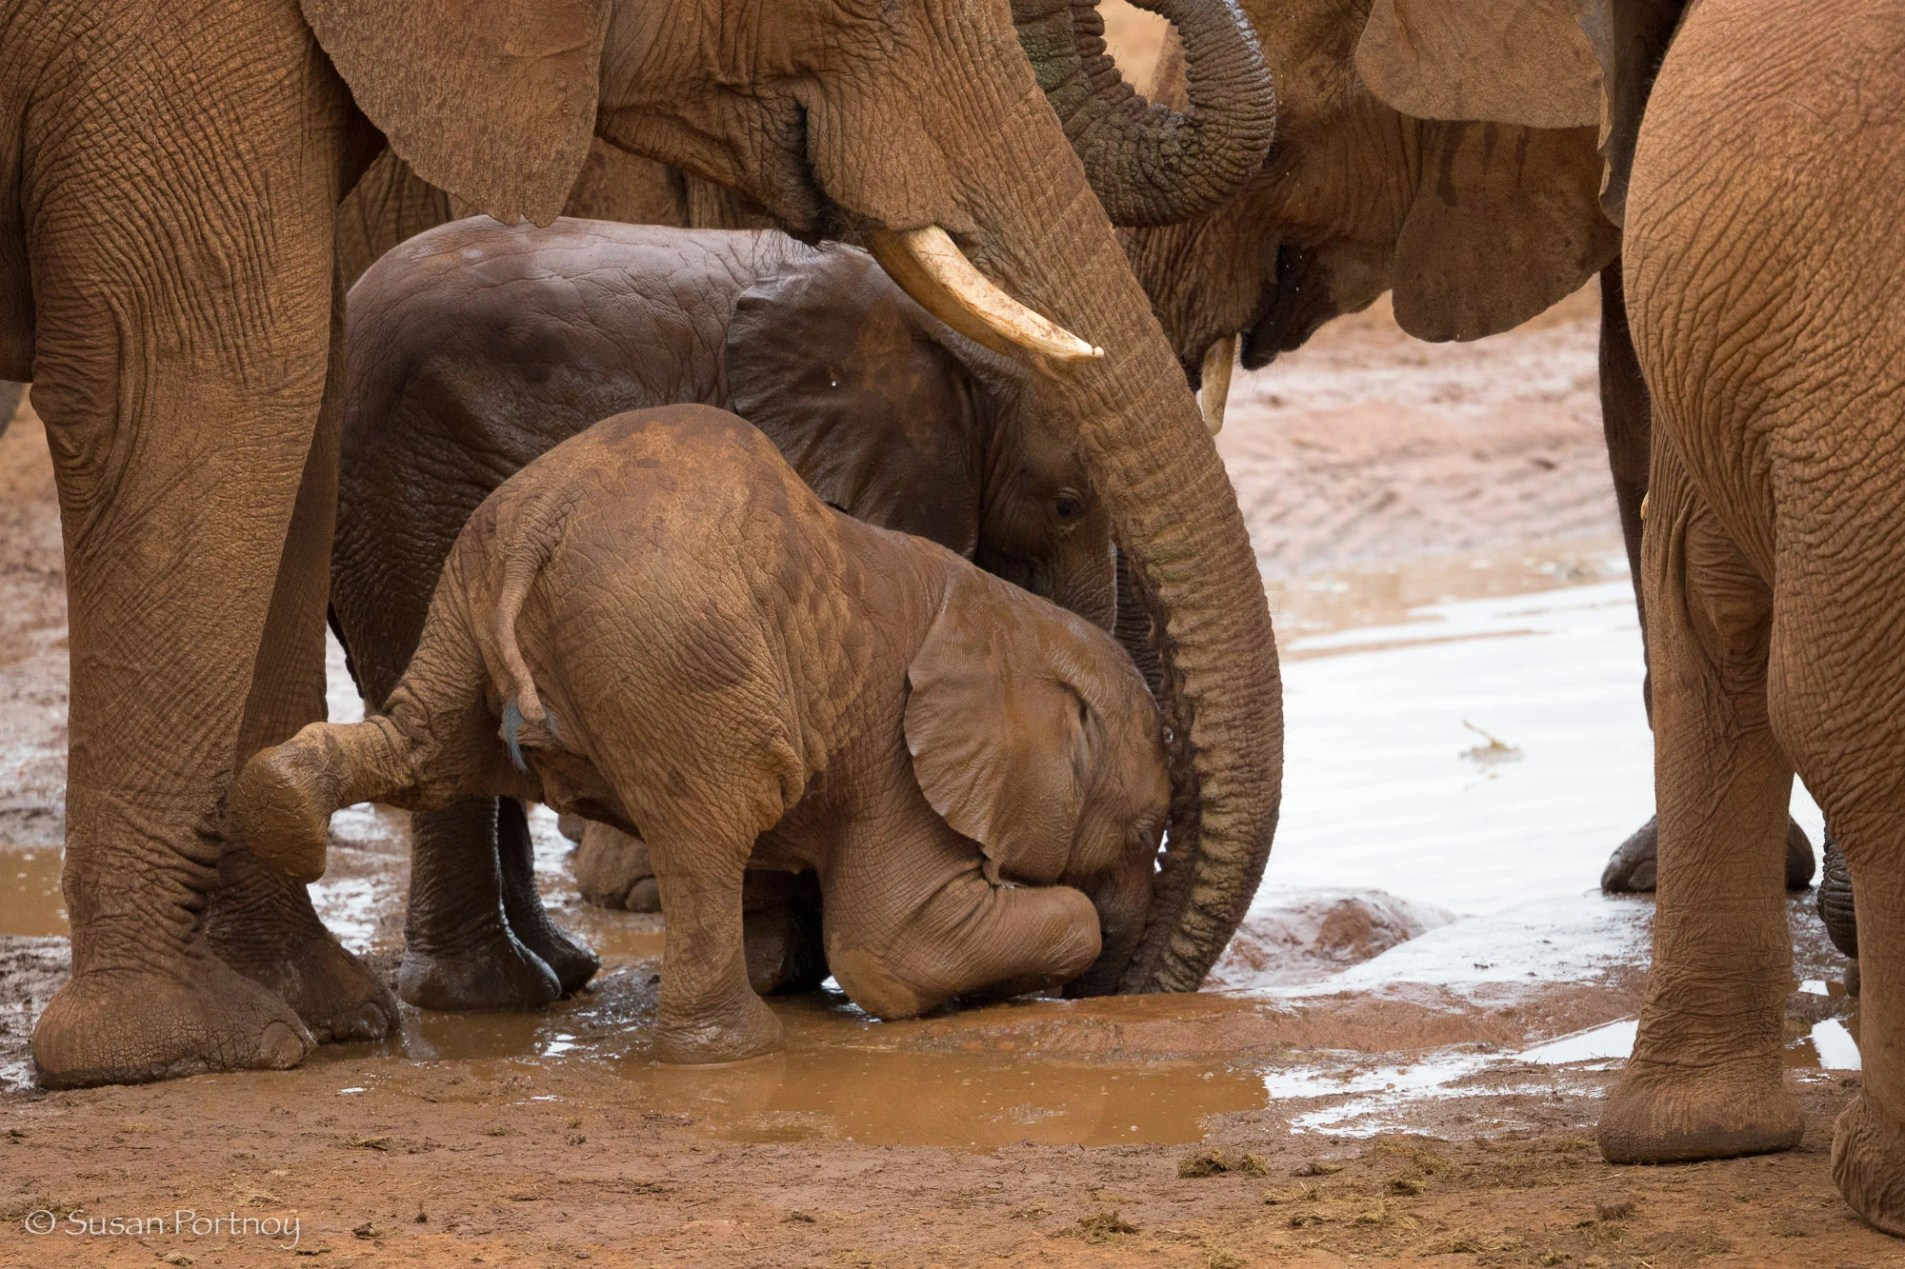 baby elephant trying to drink from the watering hole around the Molori Safari Lodge in South Africa